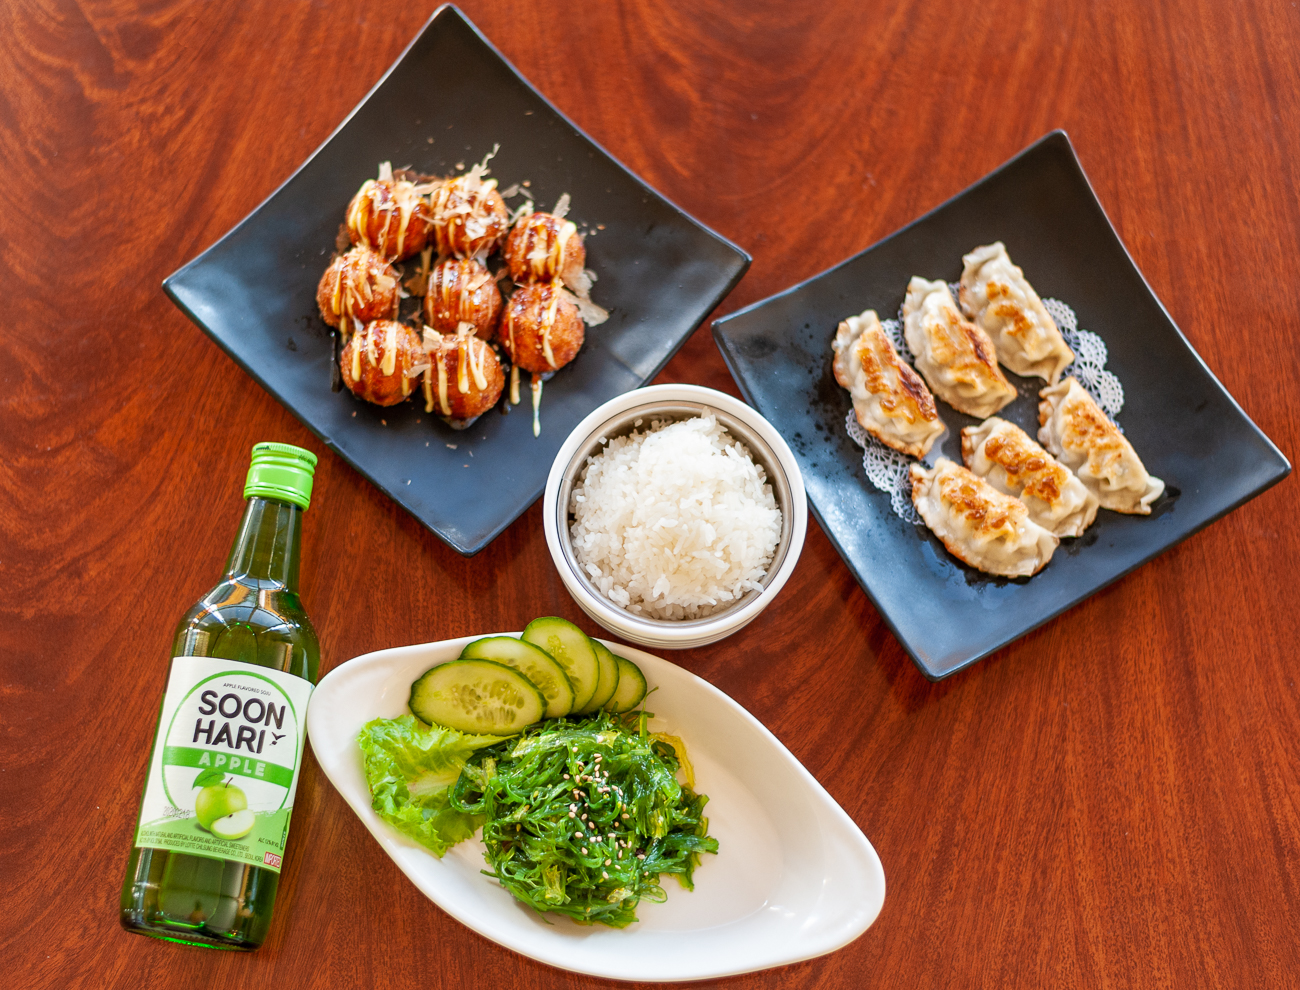 Seaweed Salad, Rice Bowl, Gyoza, and Takoyaki with apple drink / Image: Kellie Coleman // Published: 12.29.20